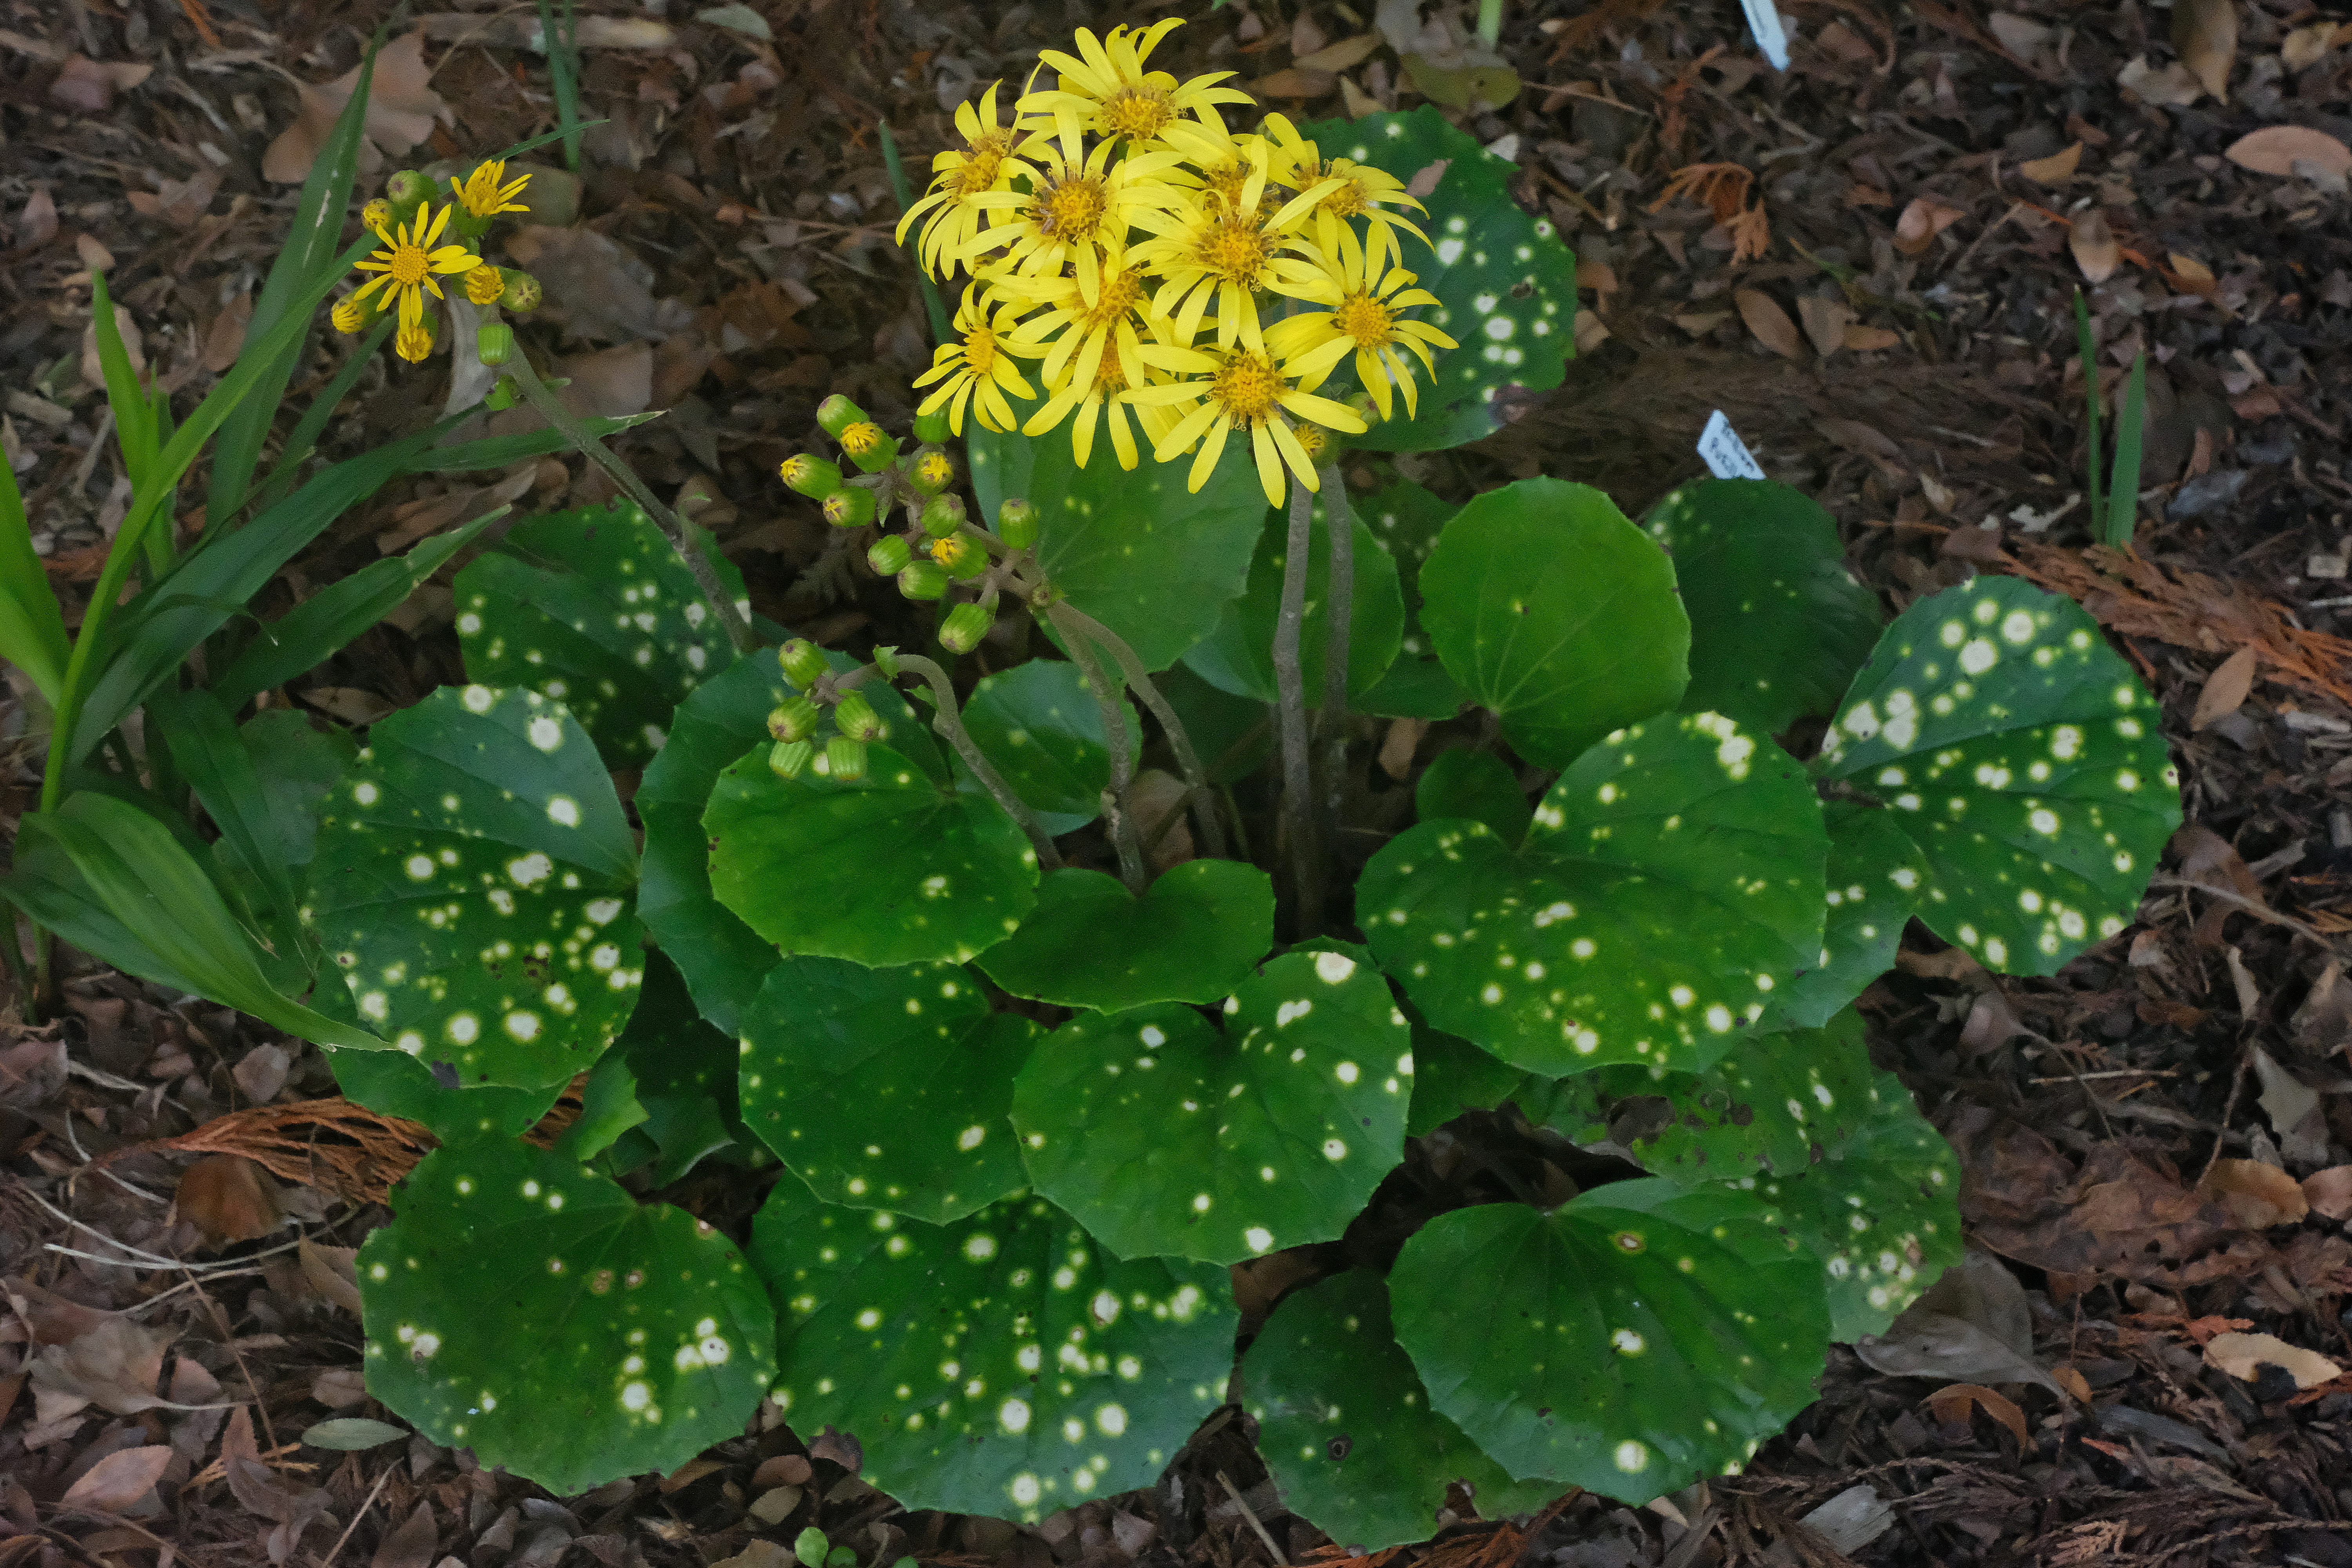 Farfugium japonicum 'Bashi Ogi' @ JLBG; this is most likely a selection of the Southern Japanese form, var. luchuense